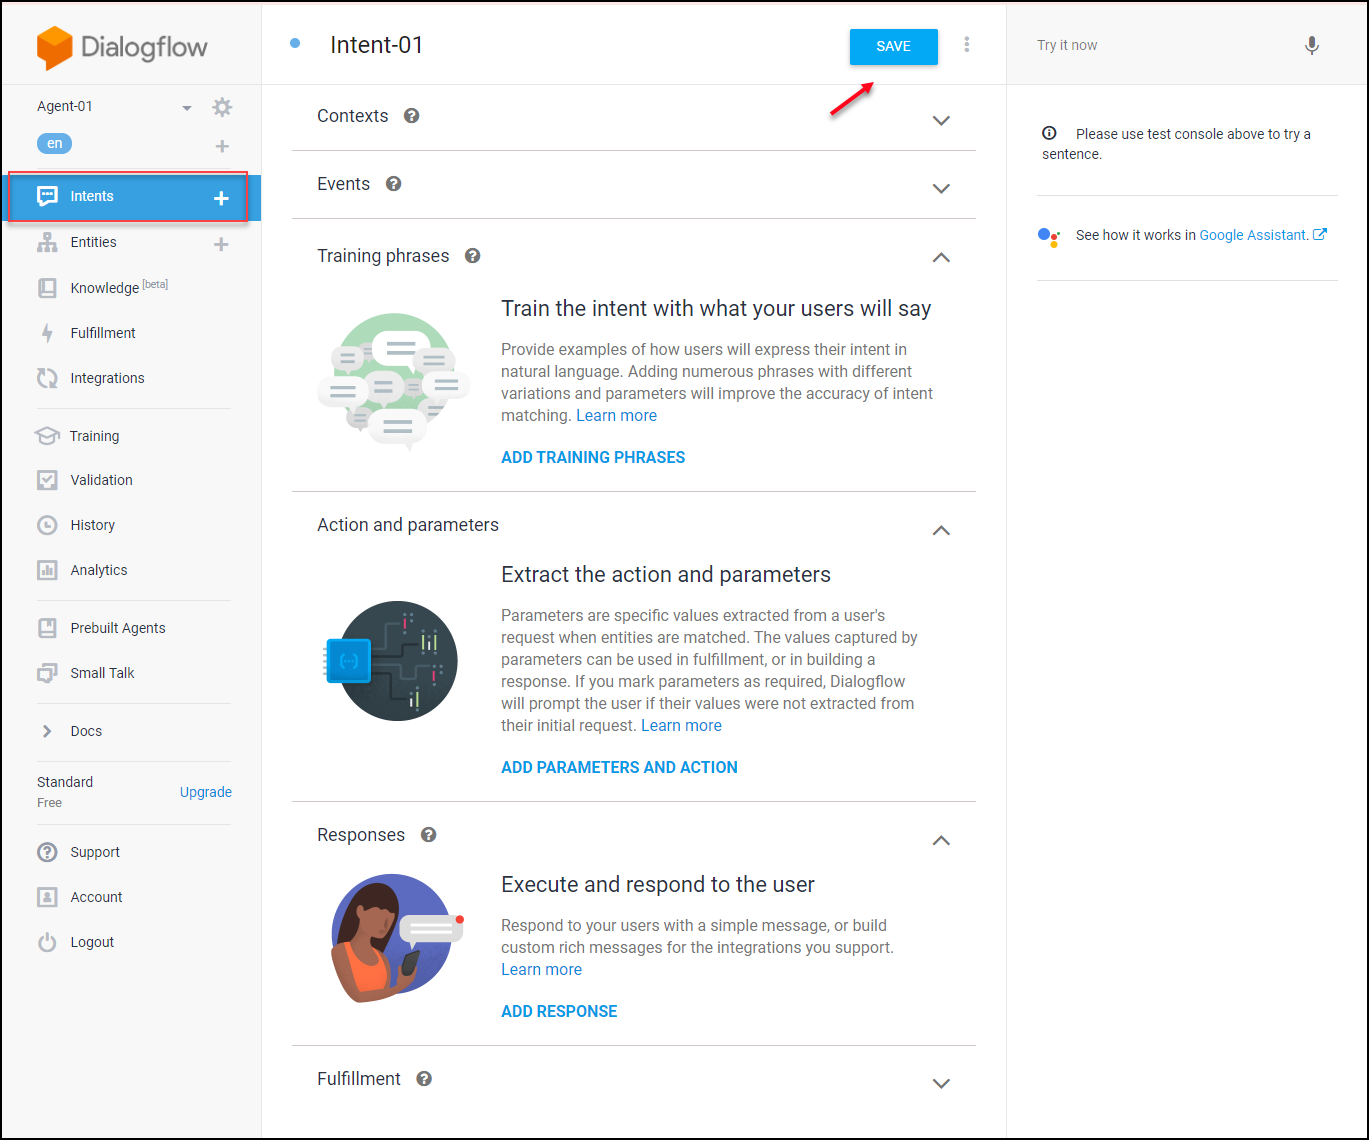 A Detailed Guide on Setting up Dialogflow | Intents